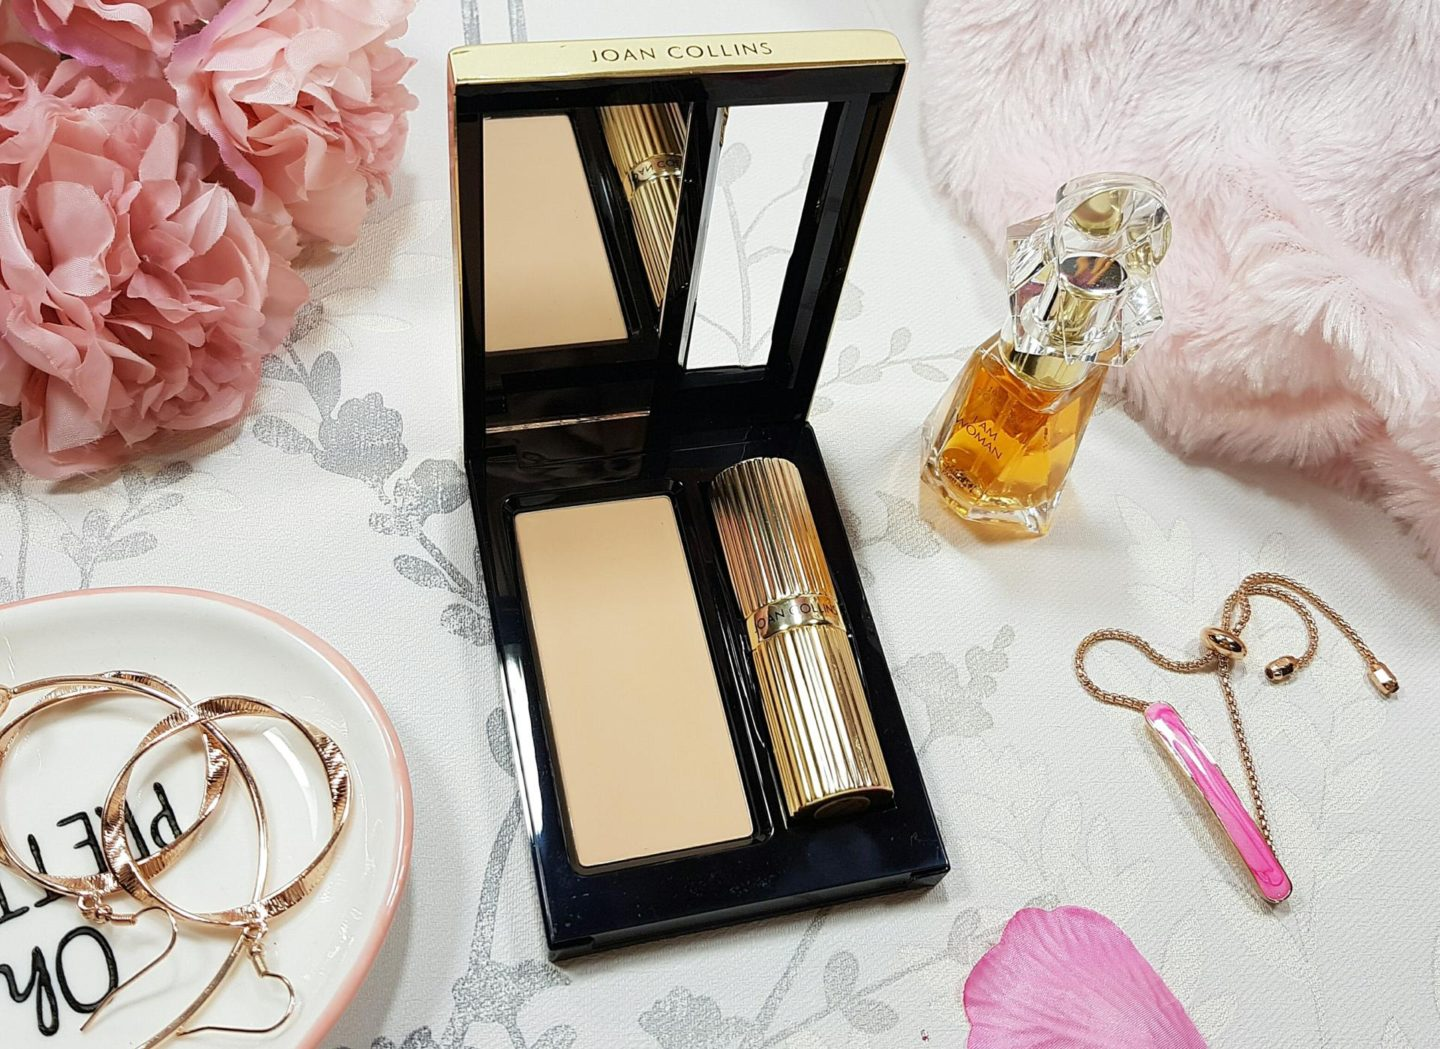 Joan Collins Timeless Beauty Makeup and Fragrance